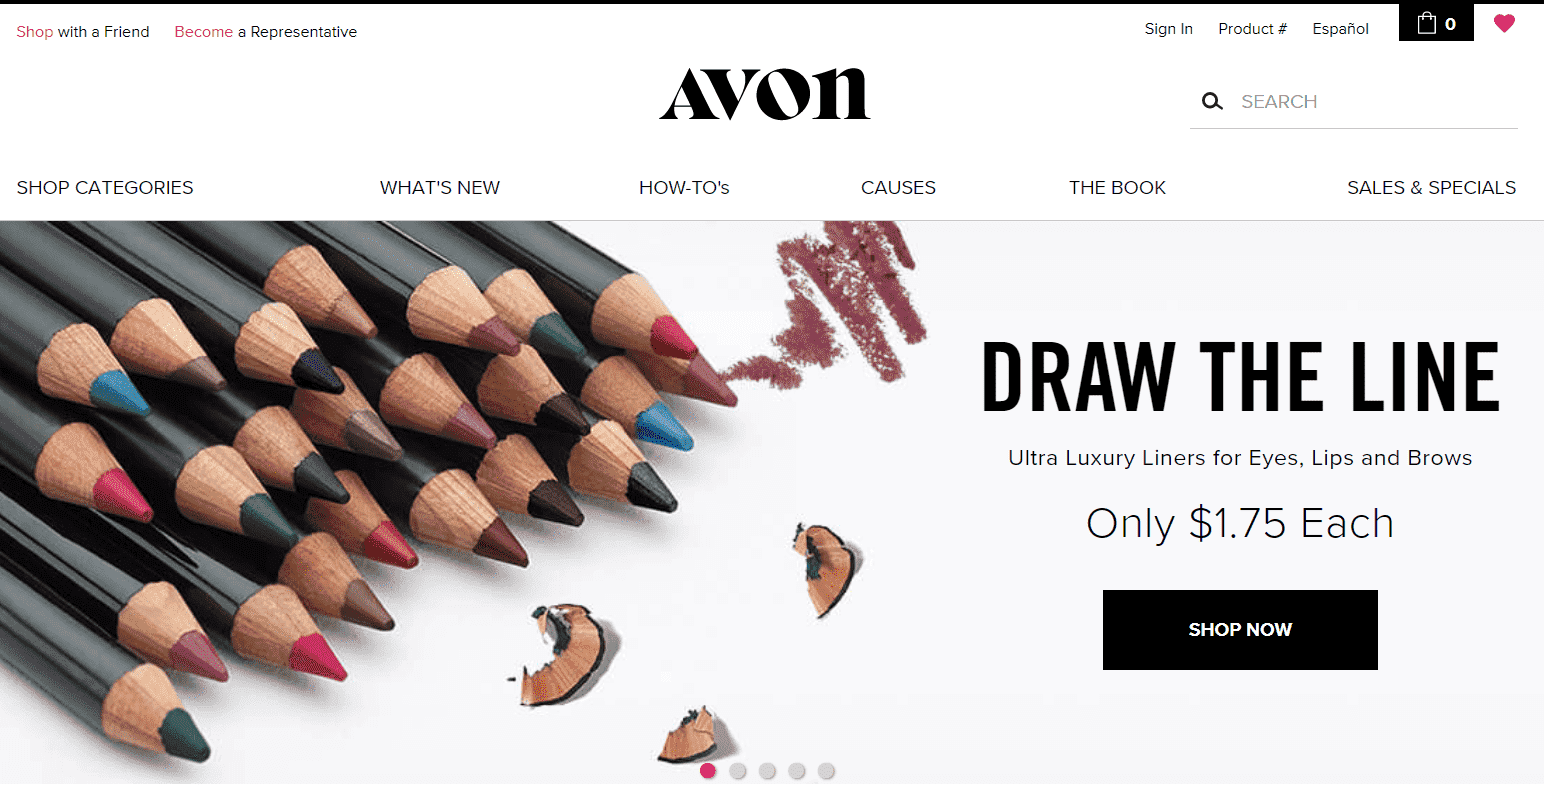 English version of Avon website